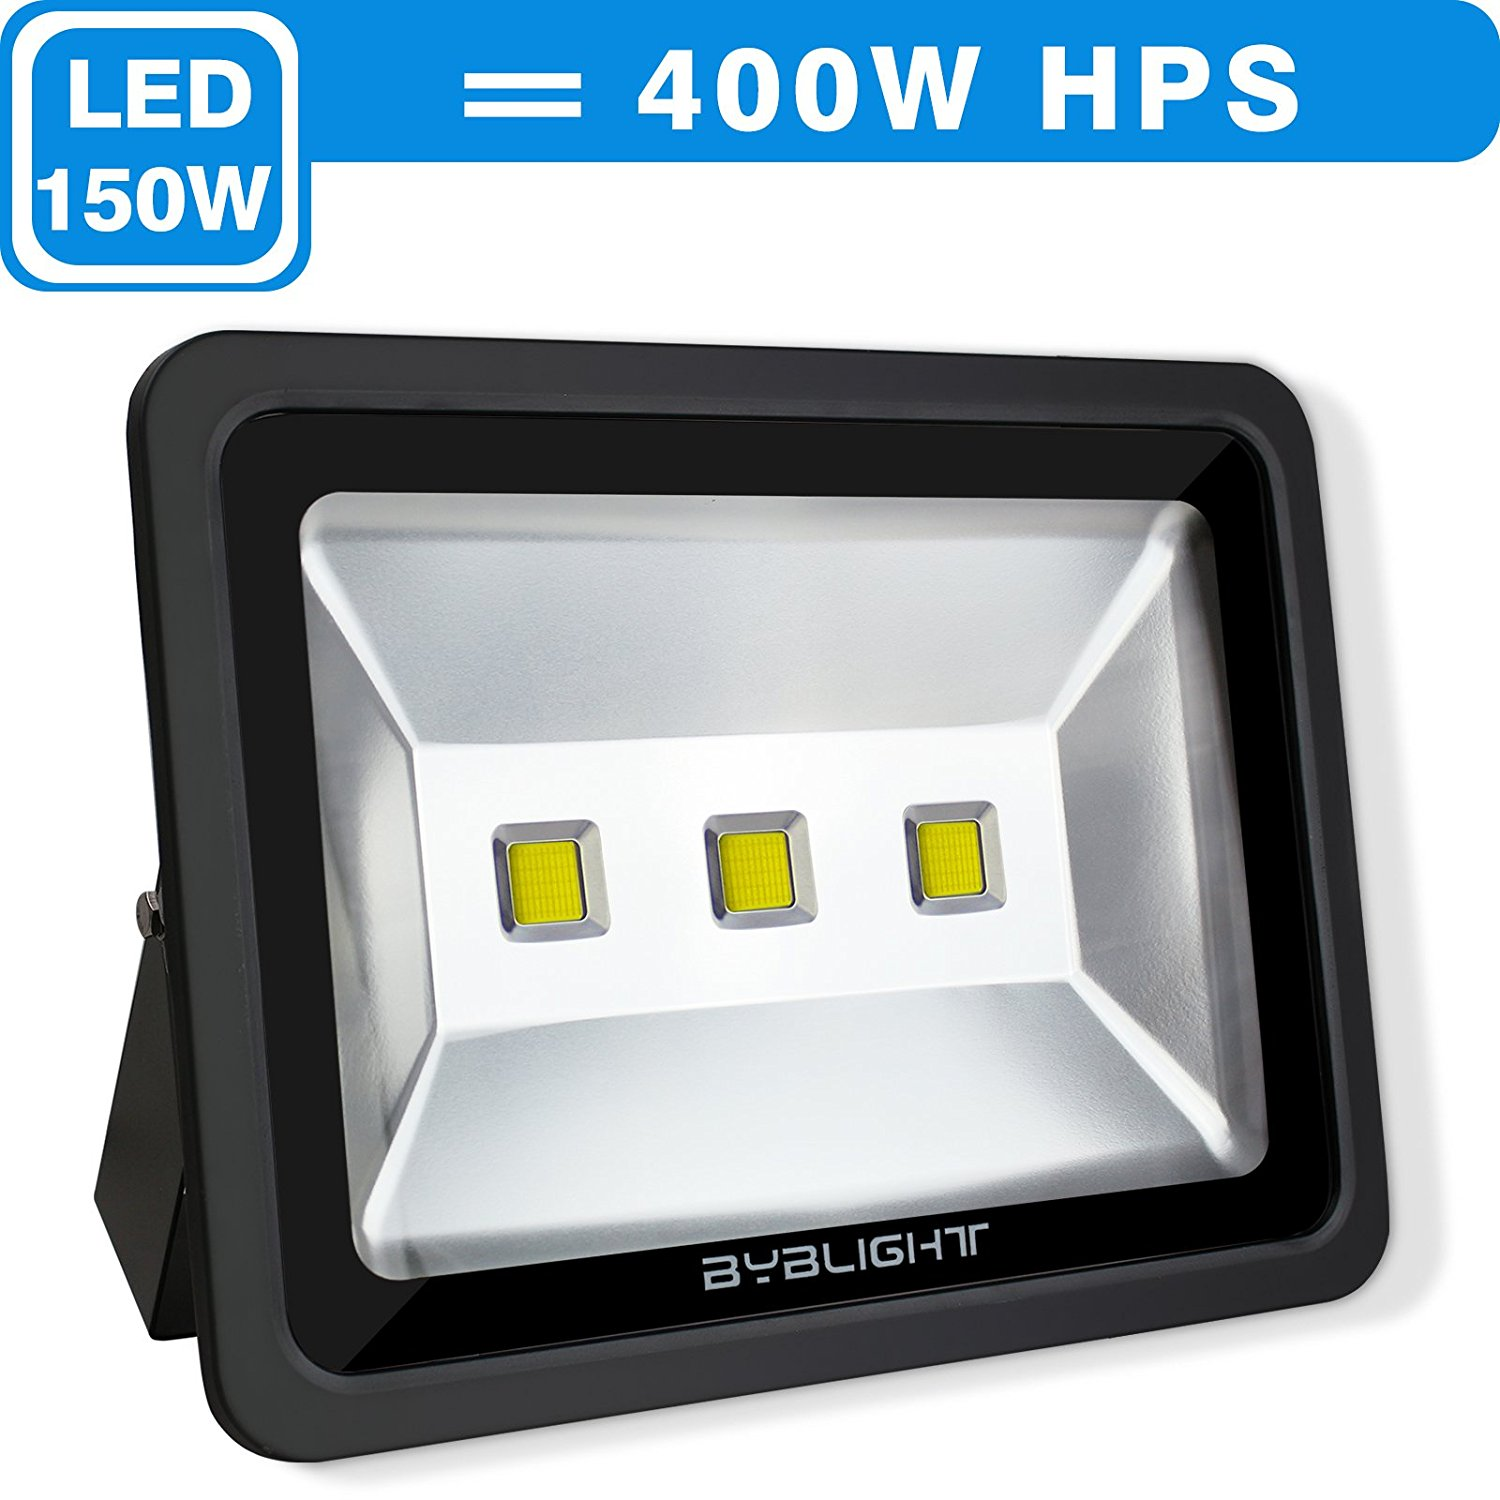 Byb 150 Watt Super Bright Outdoor Led Flood Light 400w